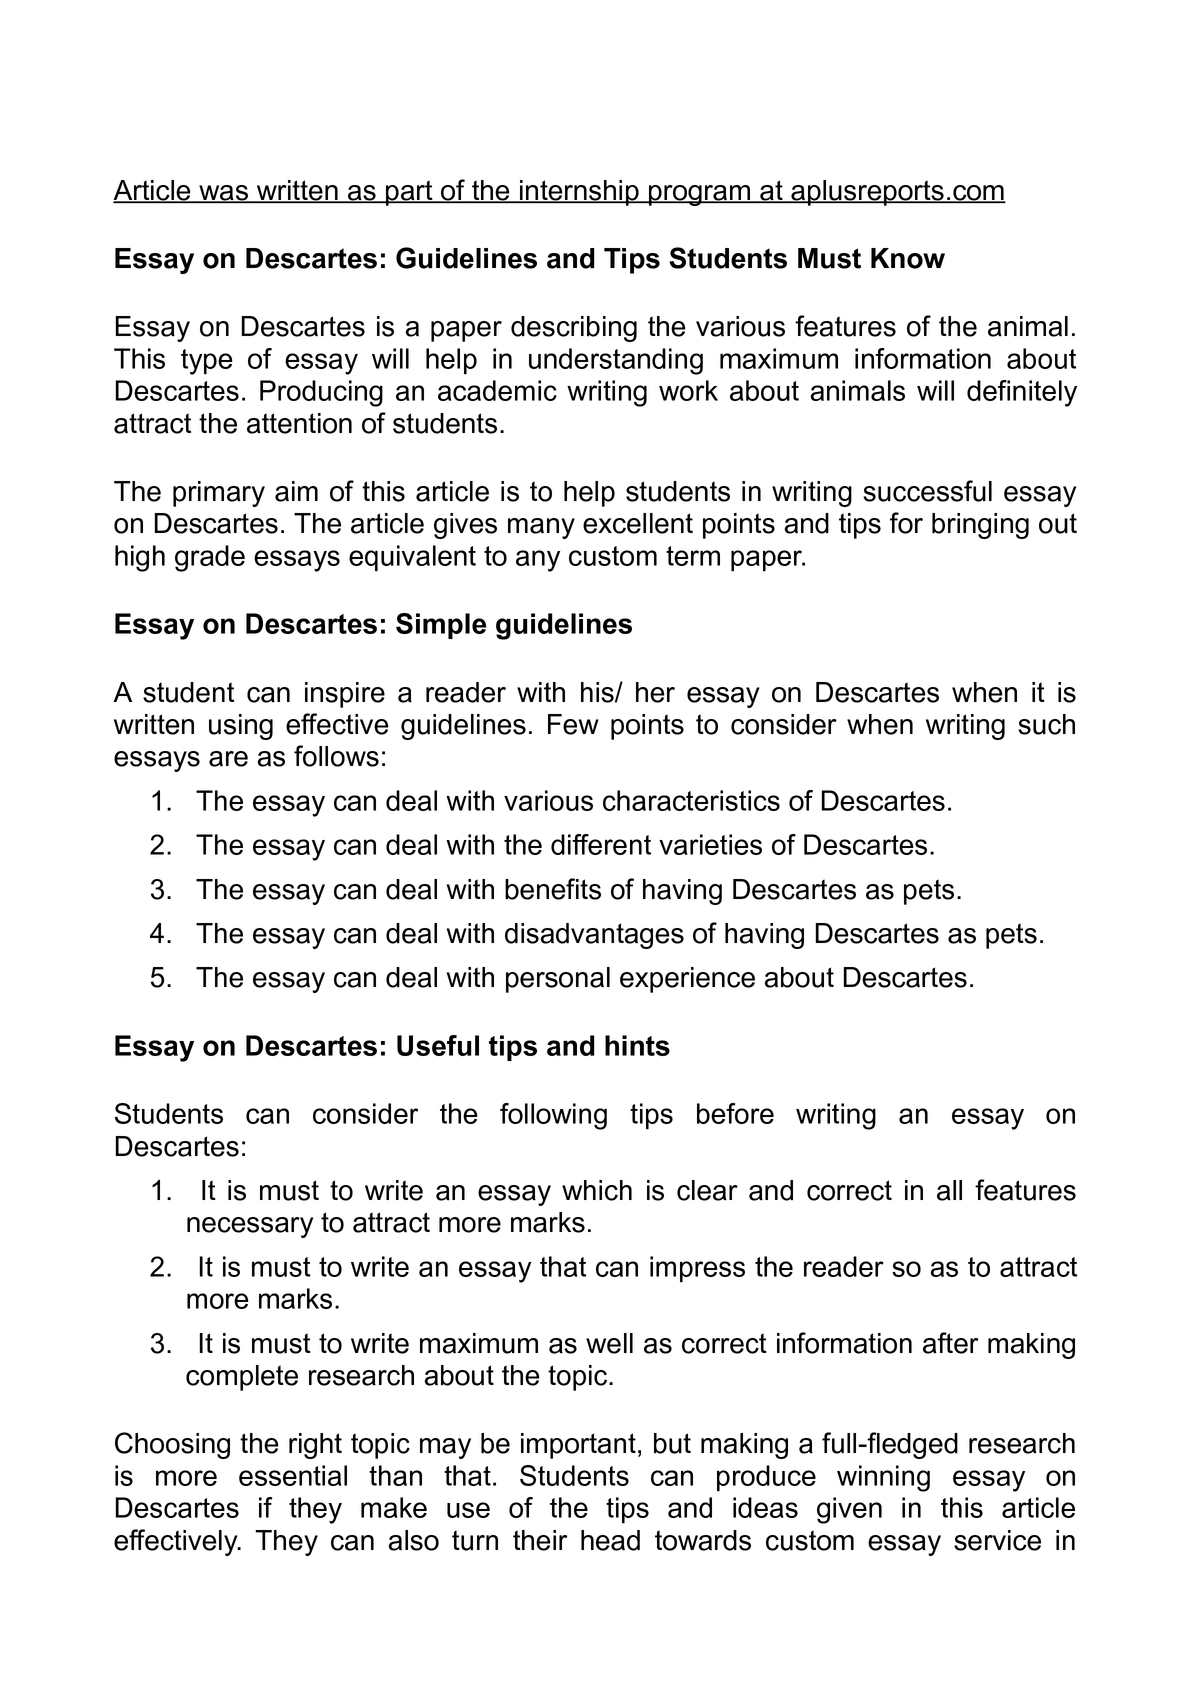 Calaméo - Essay on Descartes: Guidelines and Tips Students Must Know